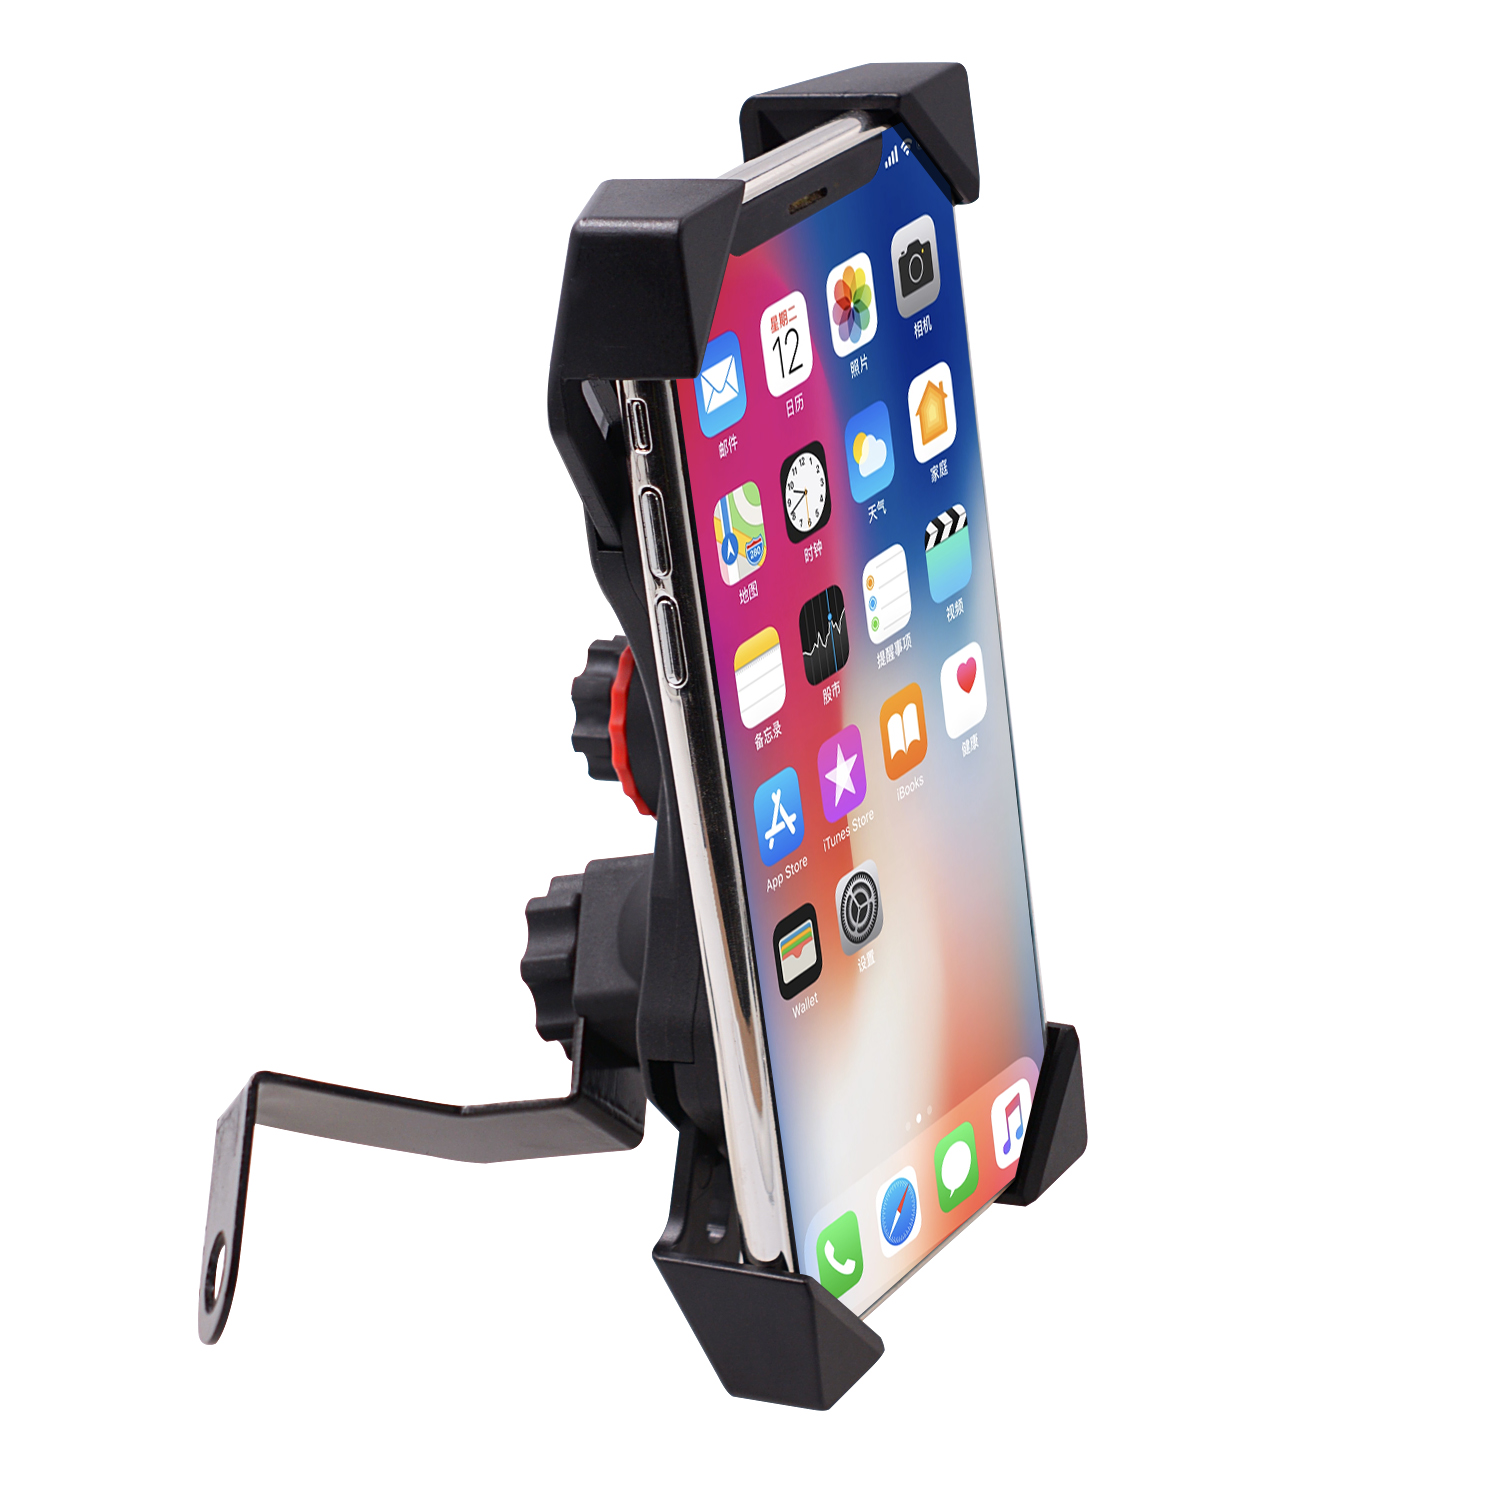 Motorcycle Mobile Phone Holder Electric Bicycle Riding Navigation One-key Shrinking Mobile Phone Holder Rearview mirror type